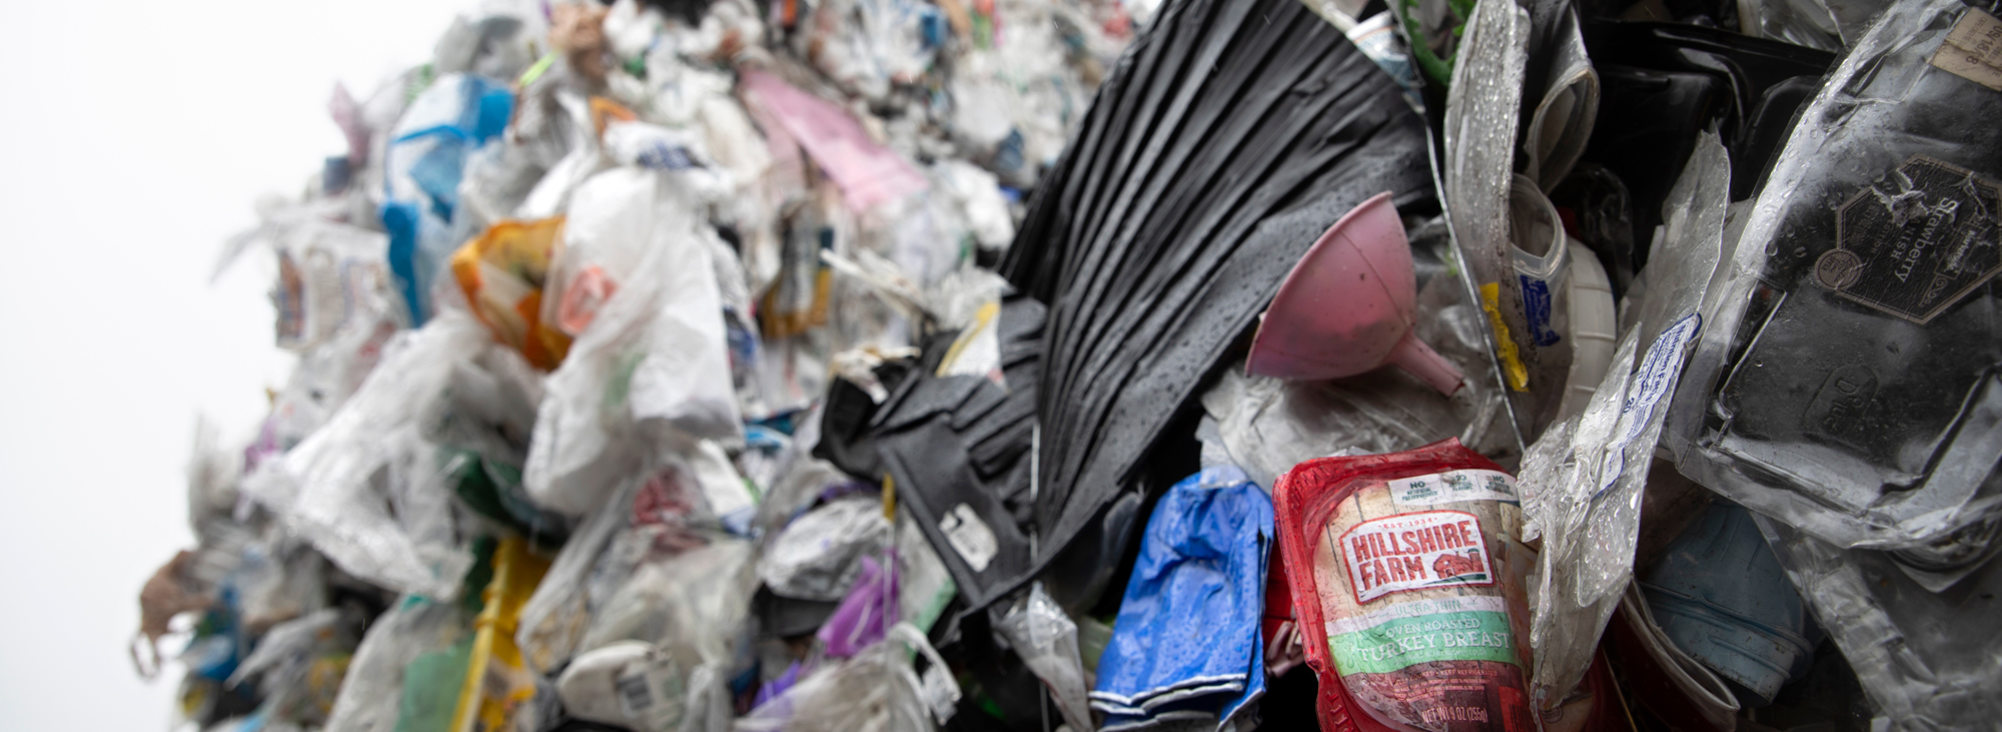 Close up of large bales of plastics items that are not recyclable